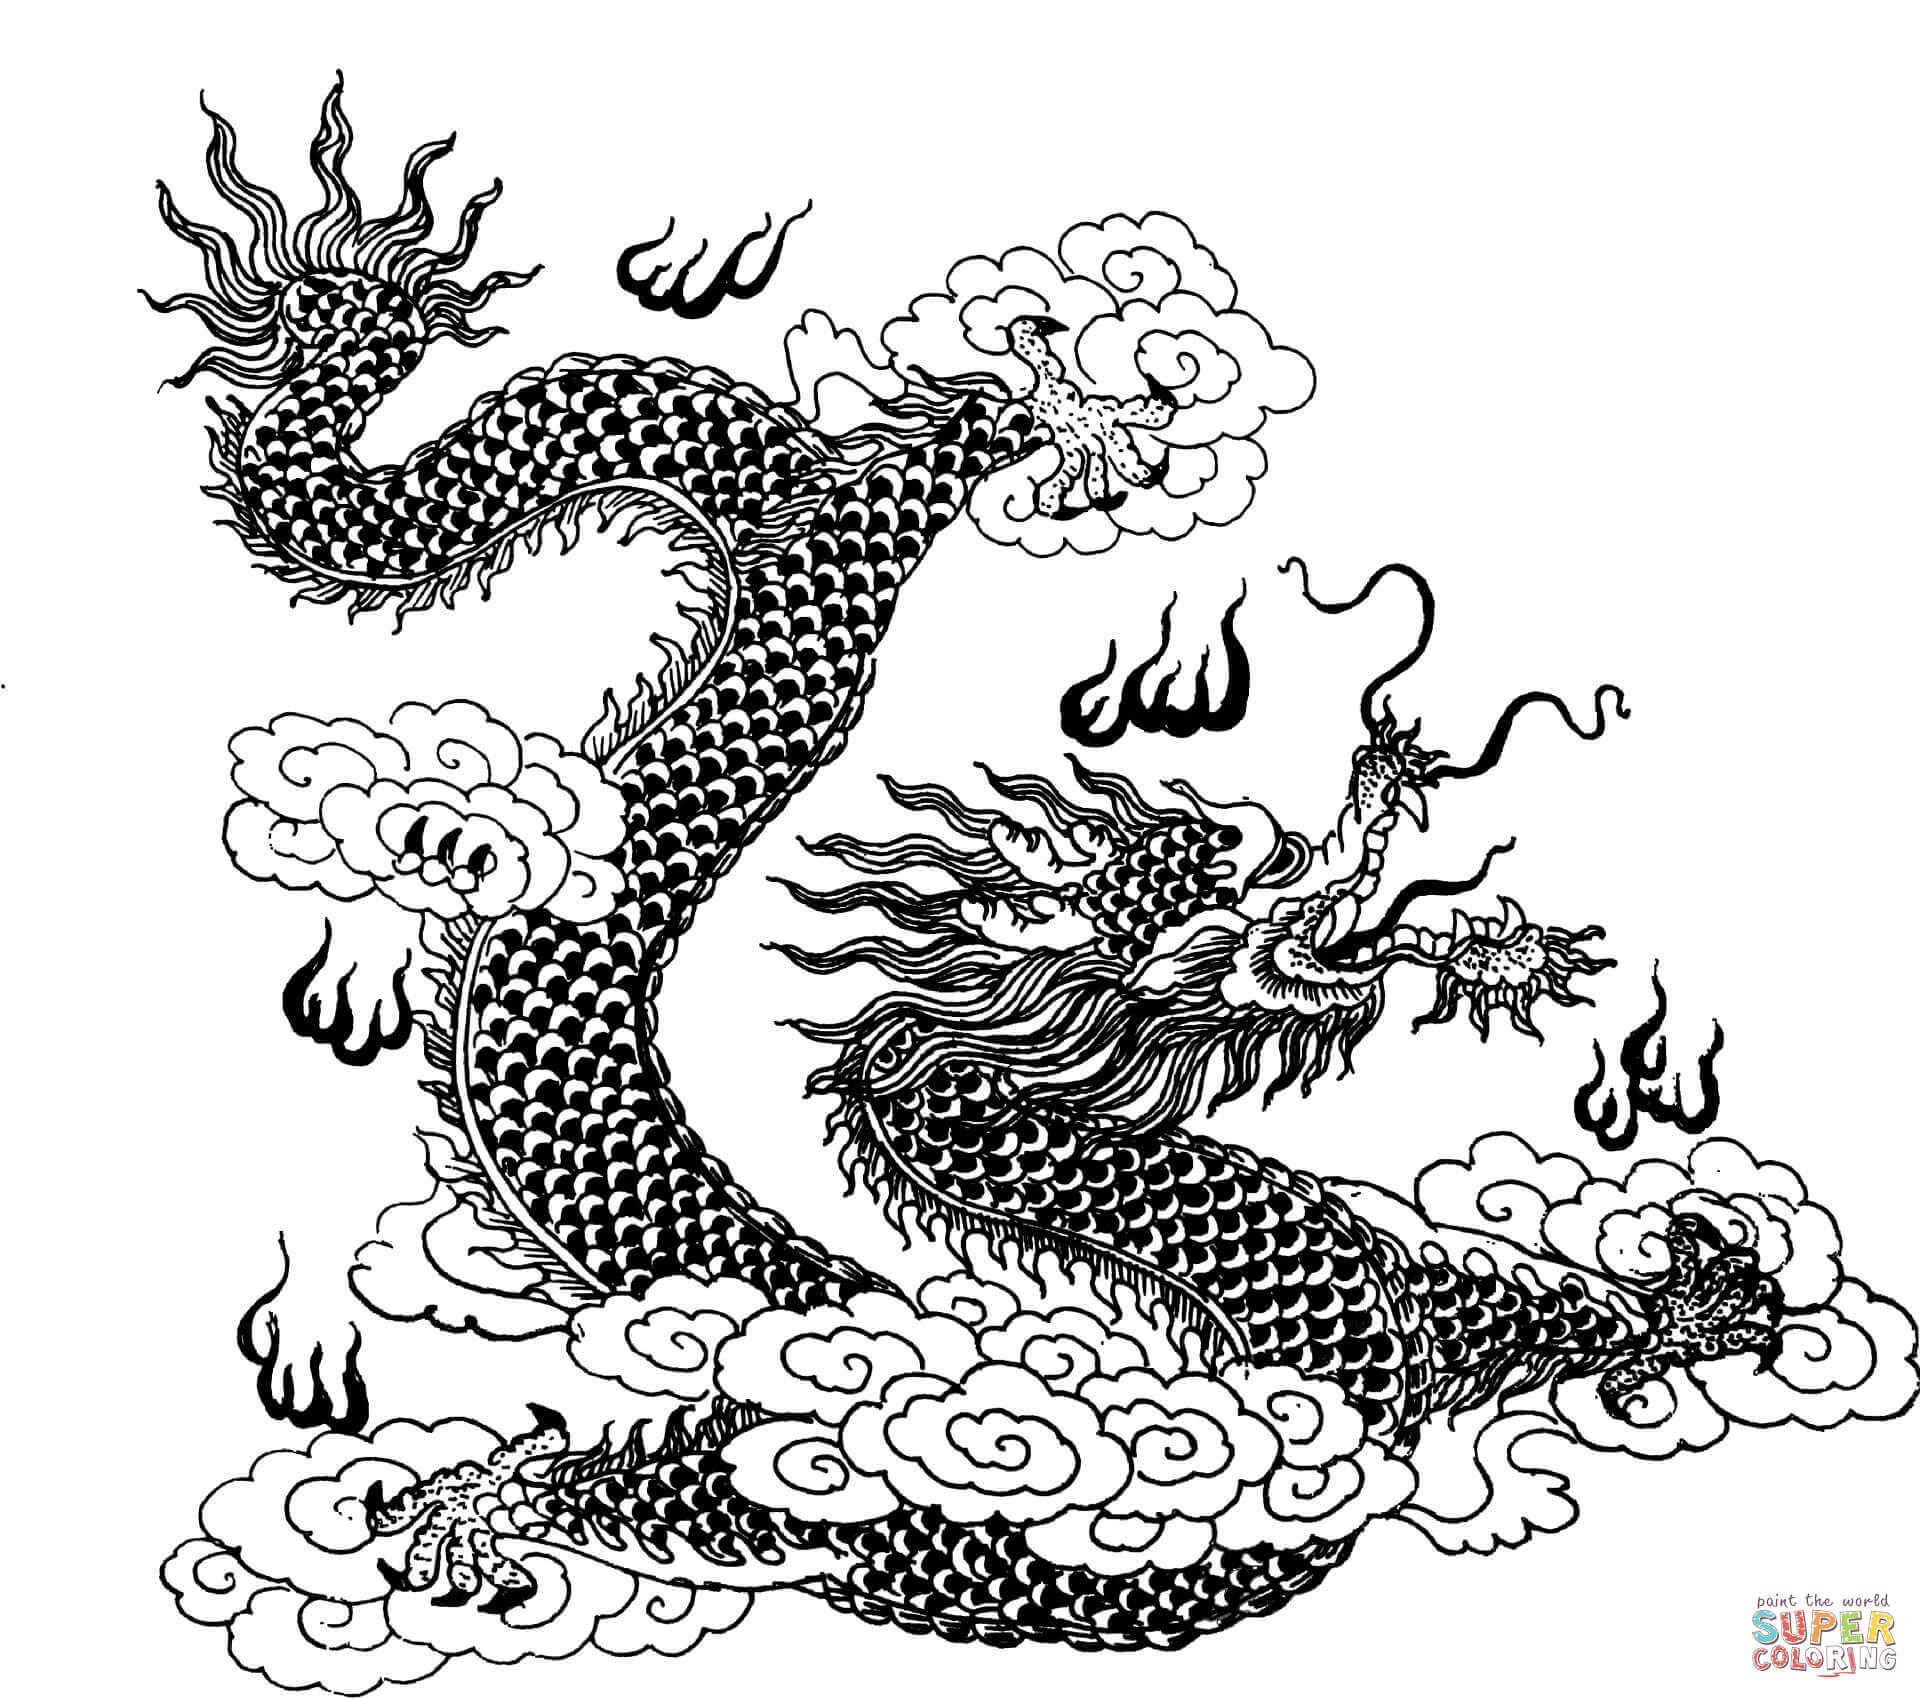 dragon coloring pages hard advanced dragon coloring pages at getcoloringscom free dragon coloring hard pages